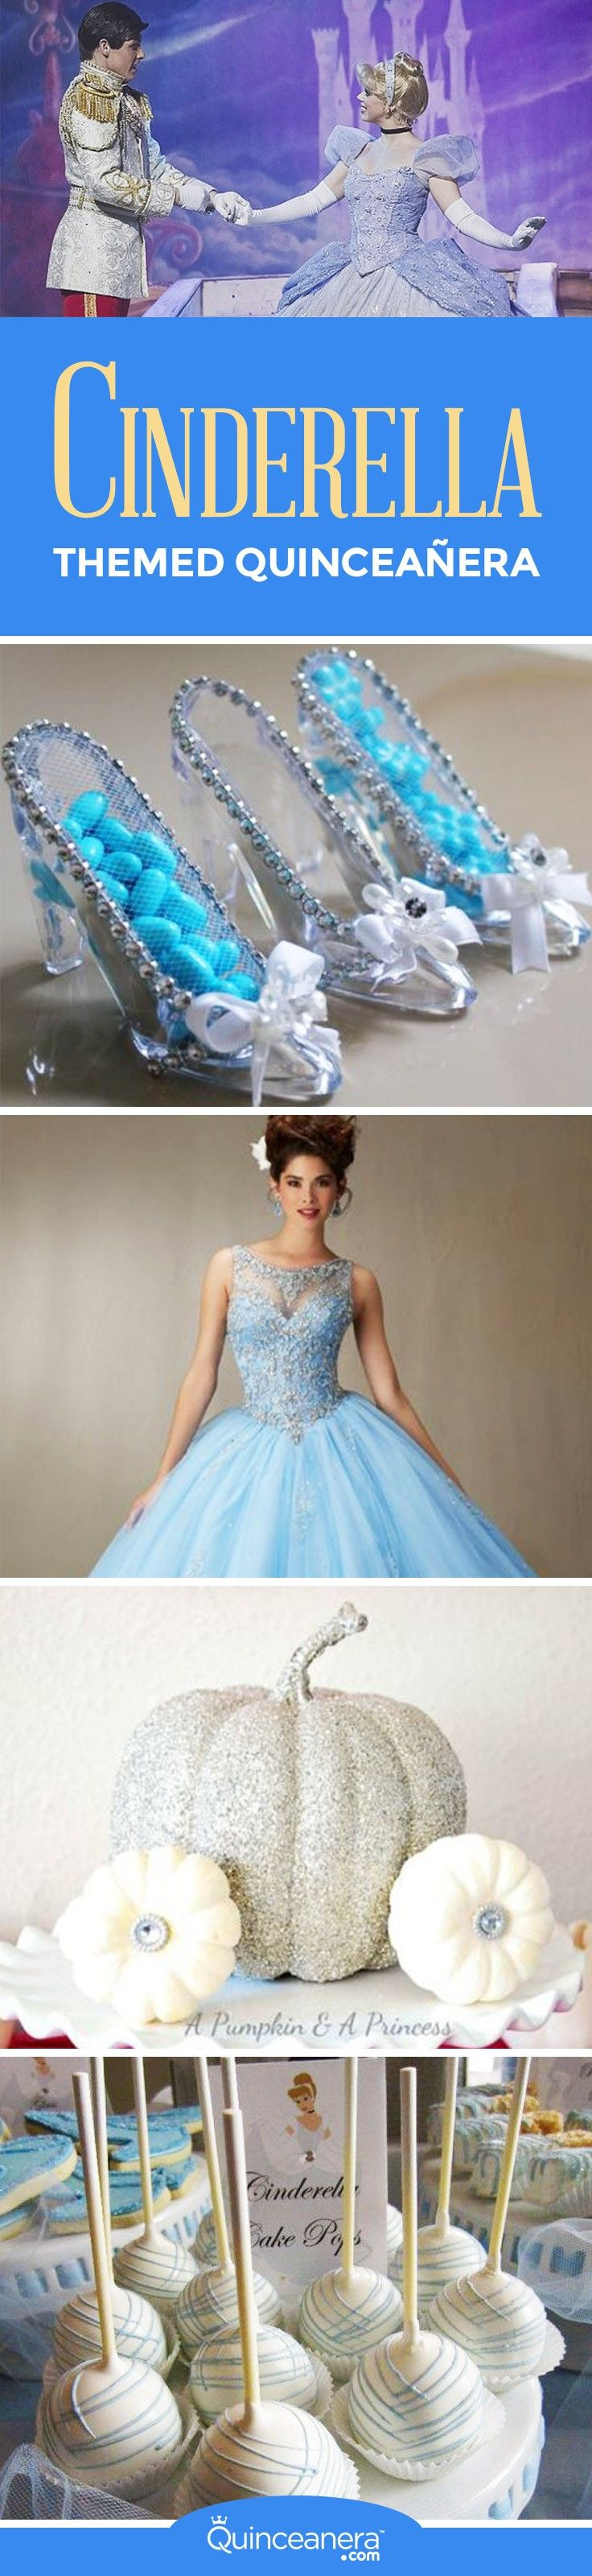 In order to pull the perfect Cinderella themed quinceanera you must first locate the key elements of the story and come up with ways to adapt these to your main Quince categories. - See more at: http://www.quinceanera.com/decorations-themes/plan-cinderella-themed-quinceanera/?utm_source=pinterest&utm_medium=social&utm_campaign=article-030416-decorations-themes-plan-cinderella-themed-quinceanera#sthash.NIxCkLde.dpuf